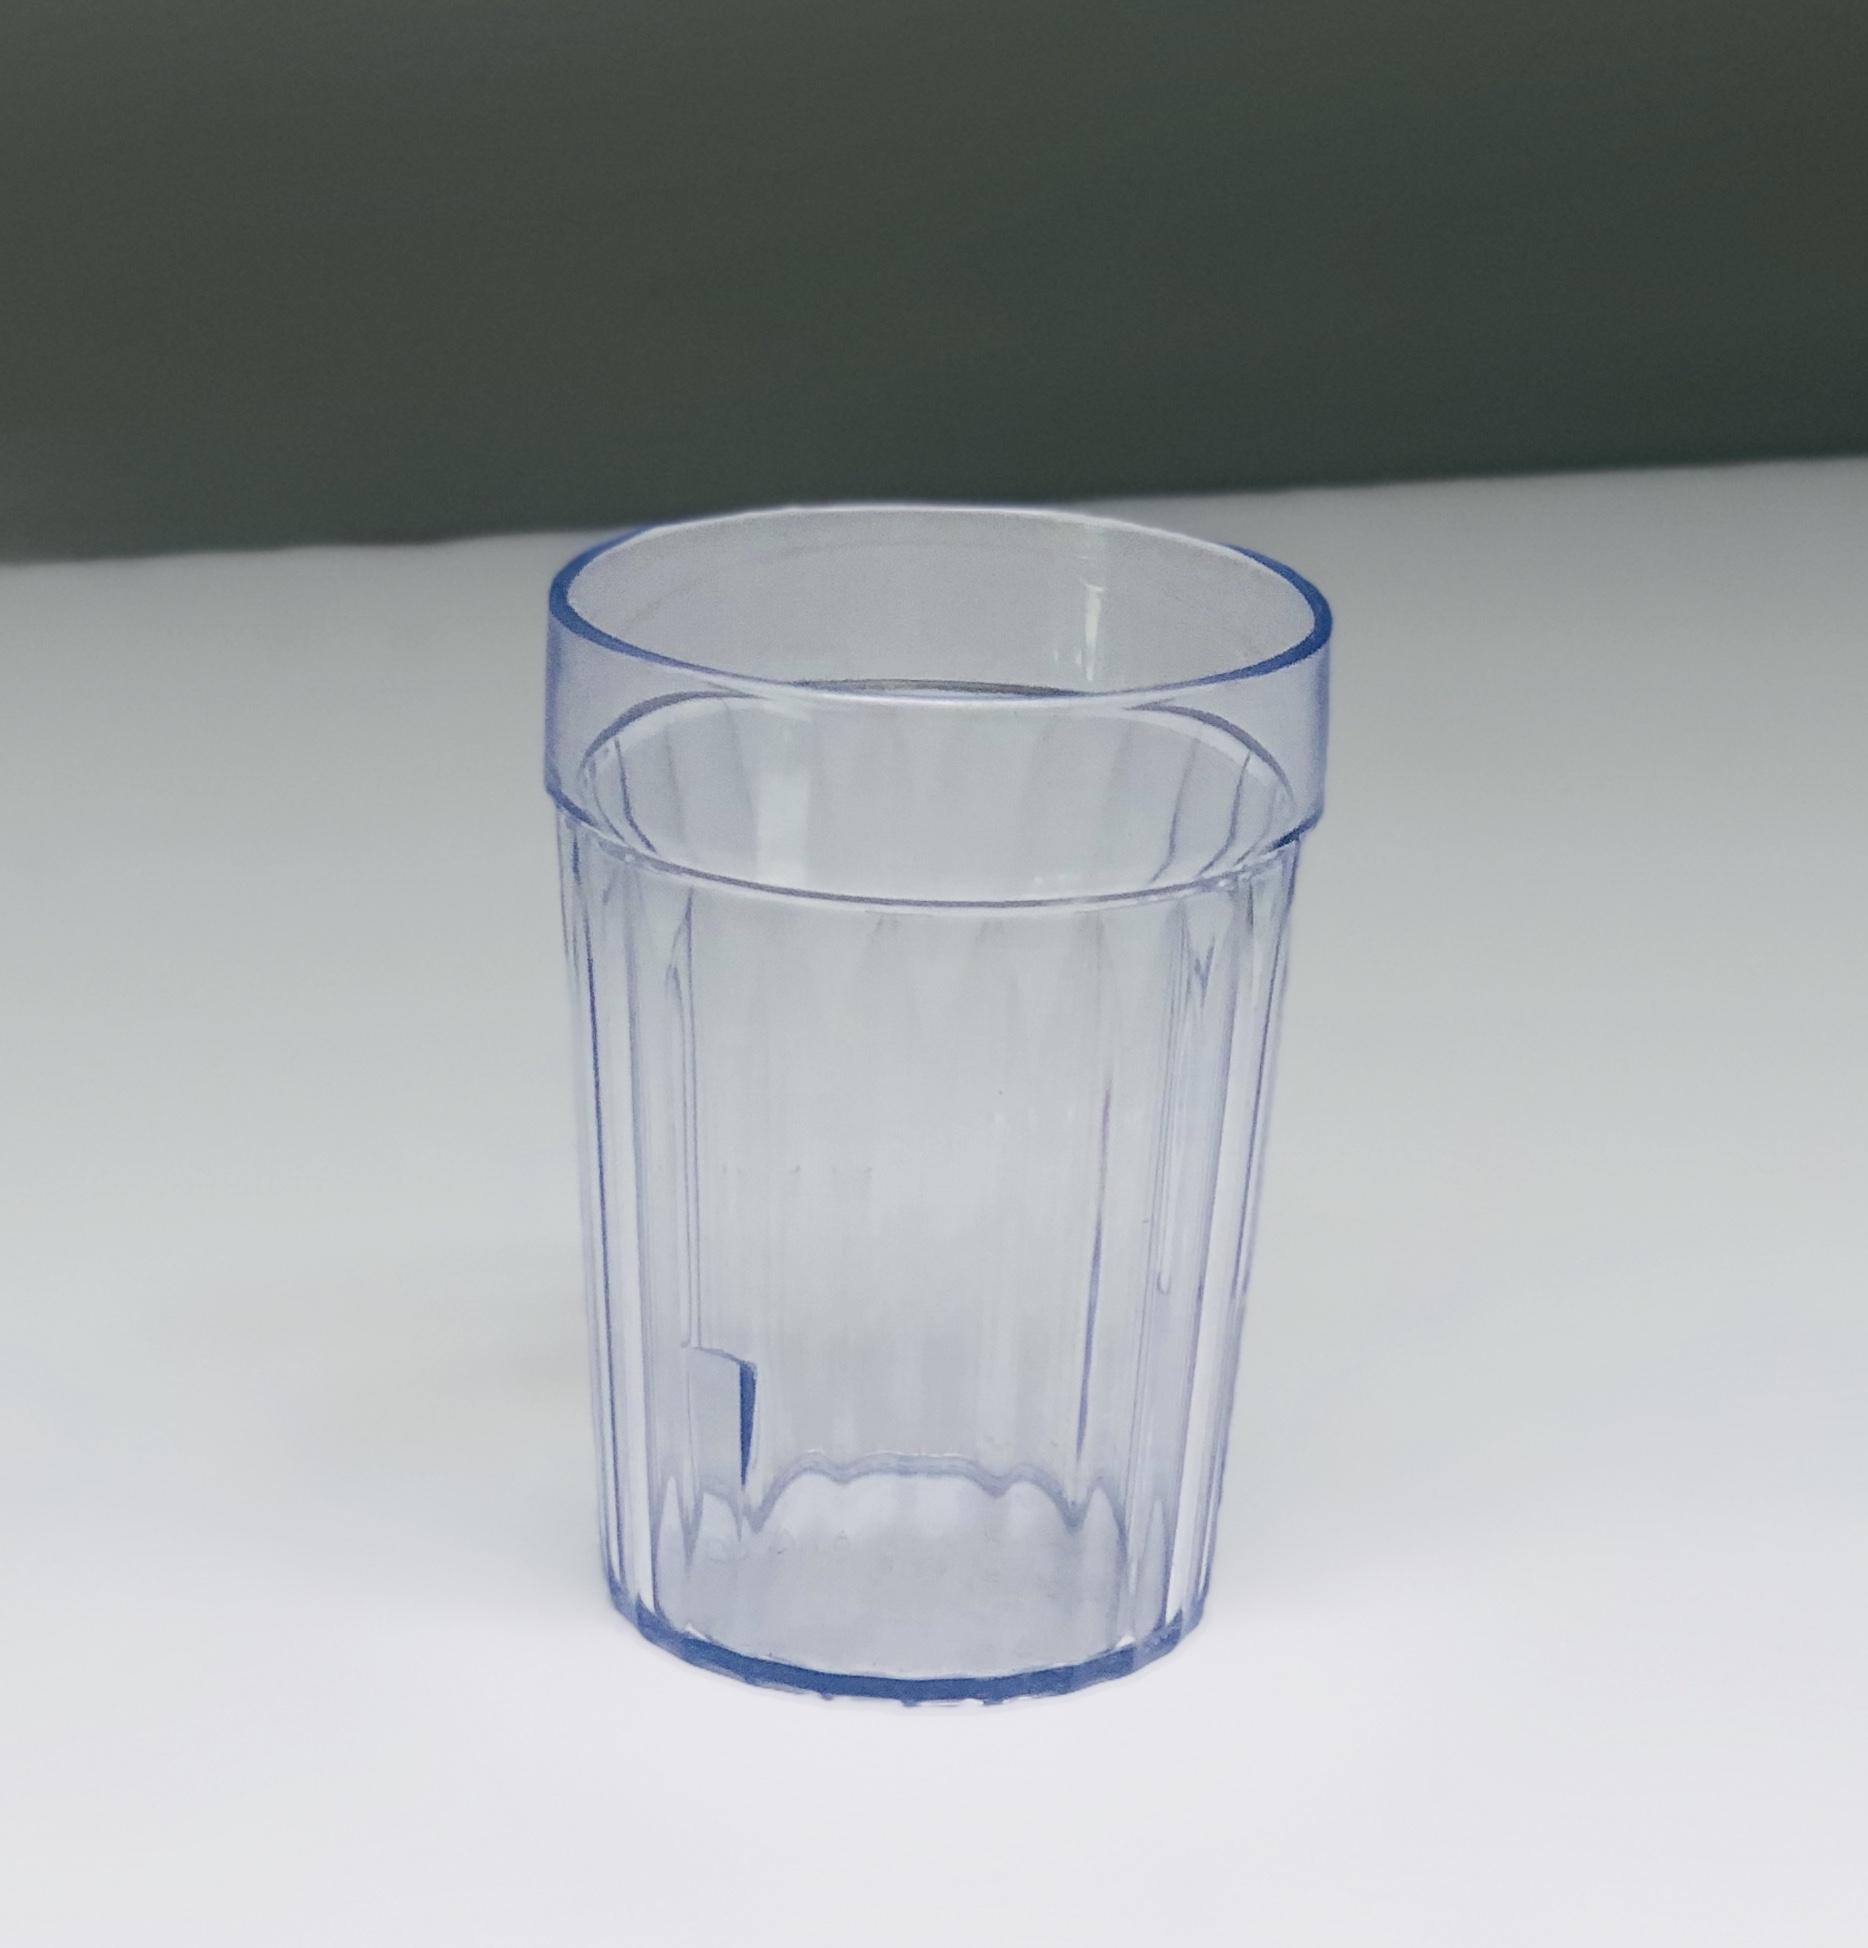 Autoplas Tumbler Feeder Cup Clear 230mL, each